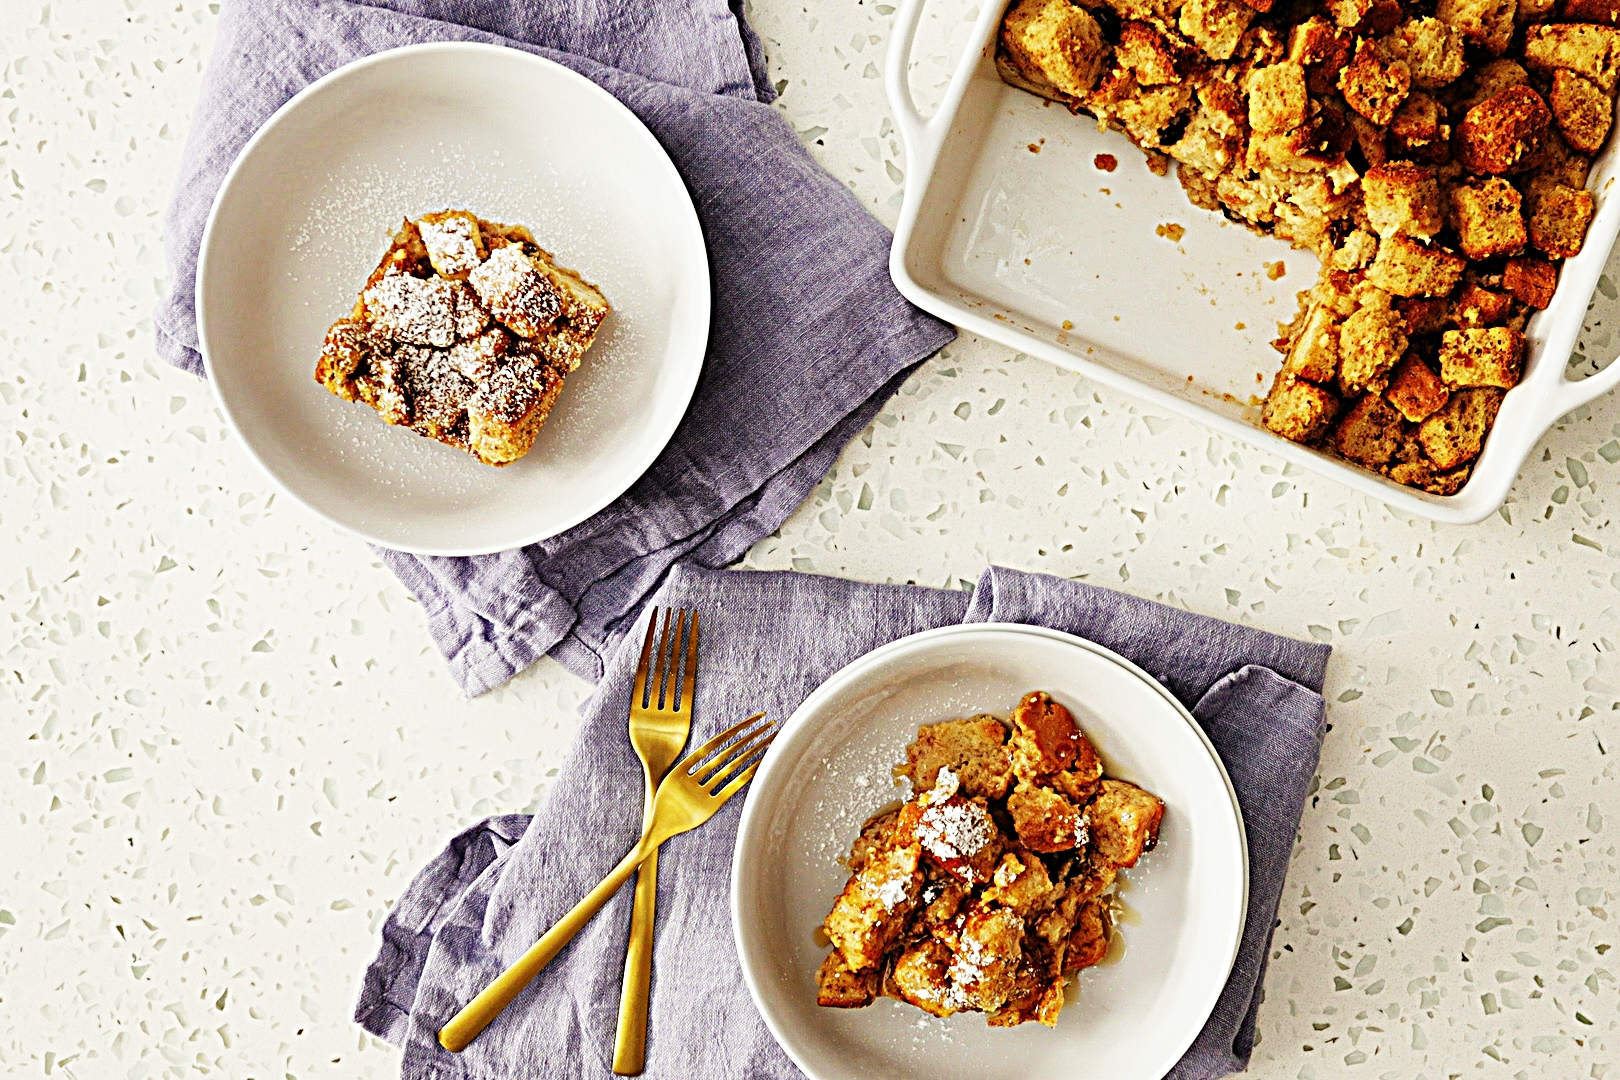 Stupid-Easy Recipe for Gluten-Free Bread Pudding (#1 Top-Rated)